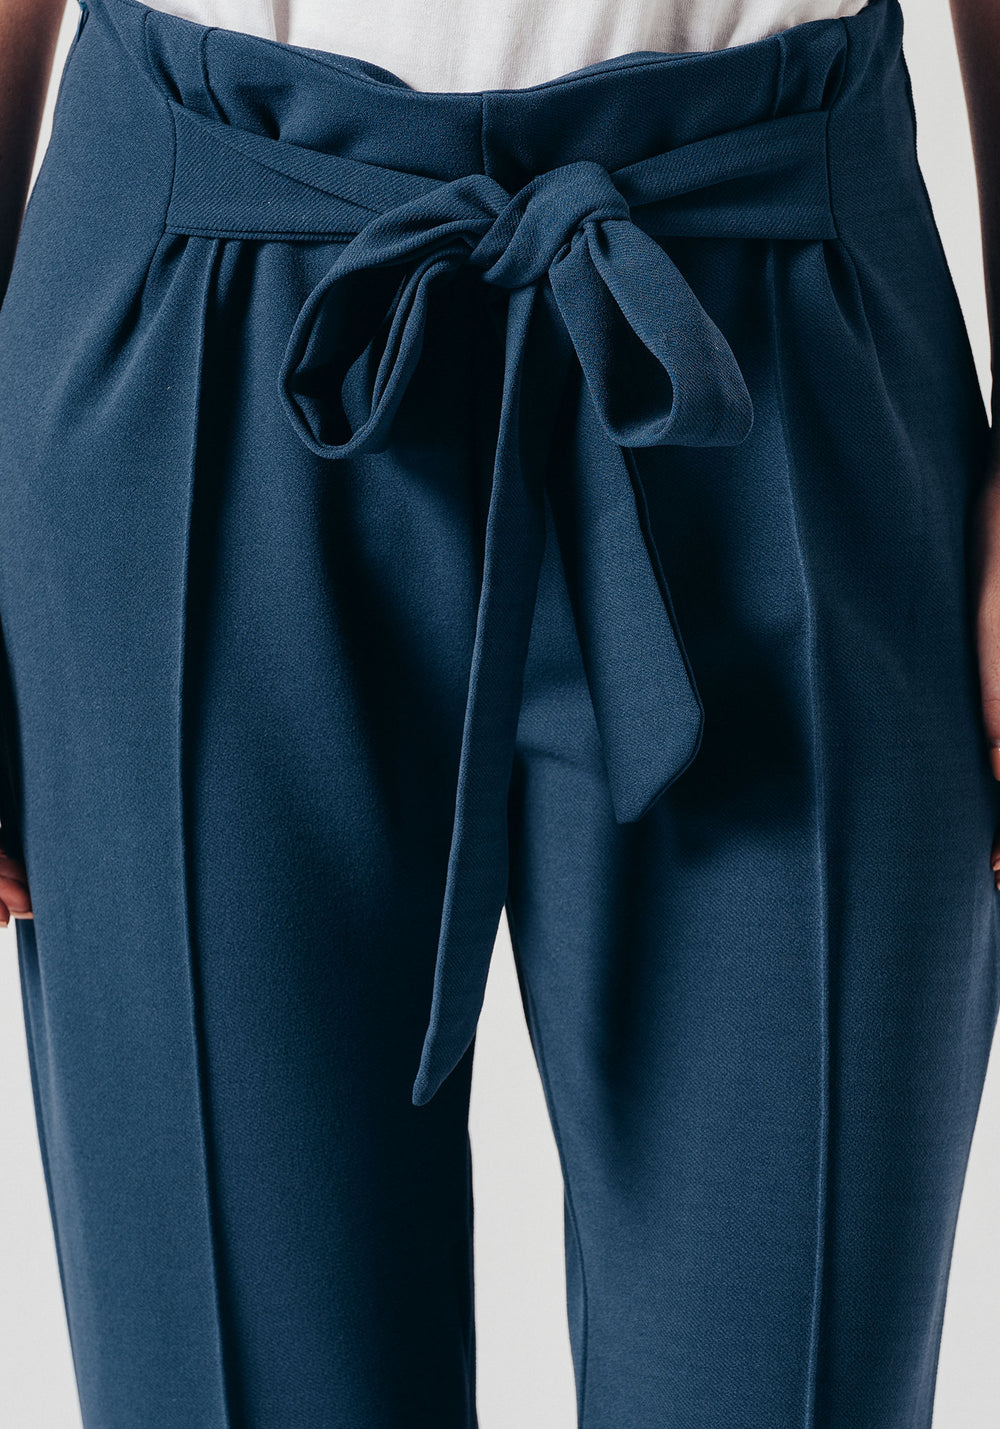 Blue Cord Trousers With Fabric Belt